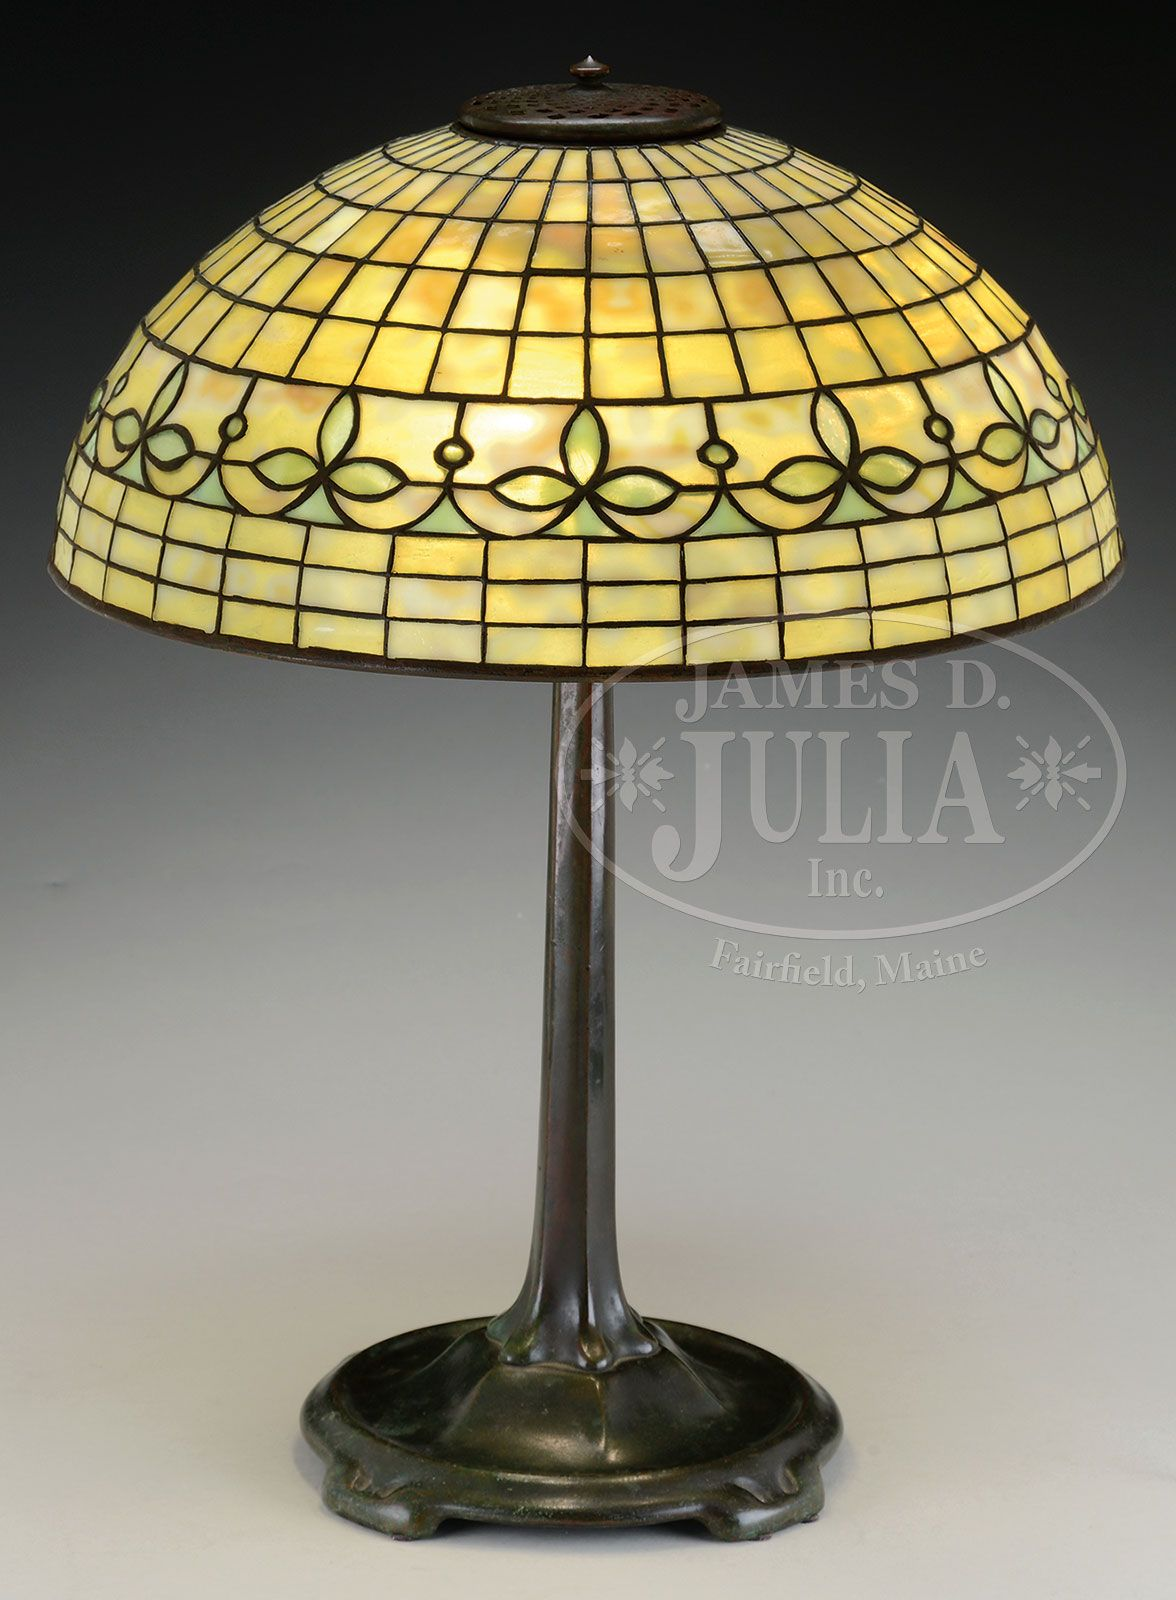 Tiffany studios fleur de lis table lamp have you seen this lamp tiffany studios fleur de lis table lamp aloadofball Choice Image